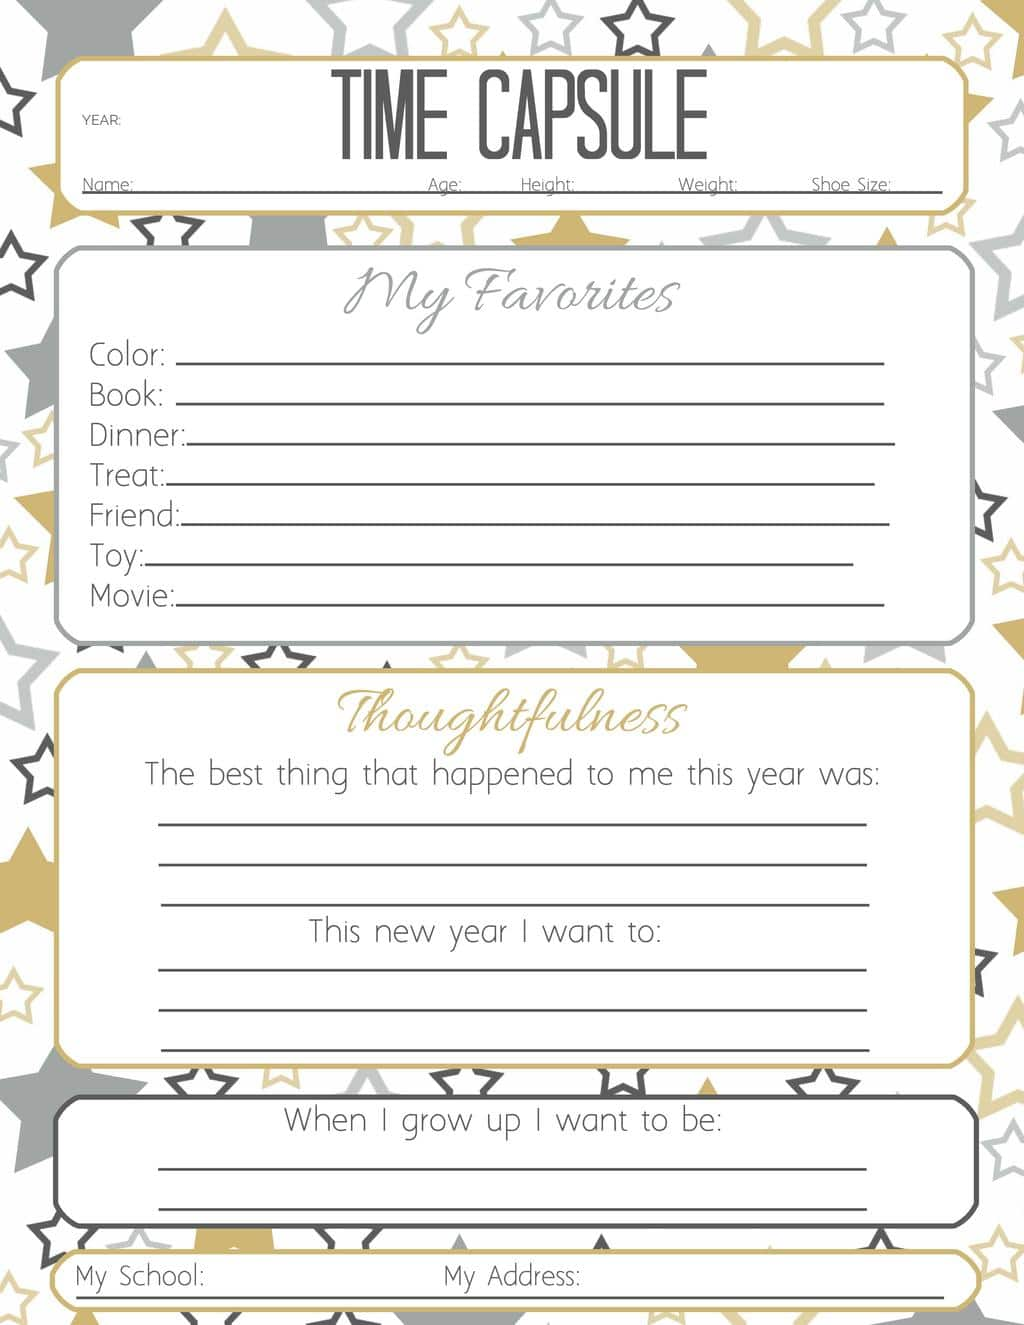 Worksheets Time Capsule Worksheet 12 new years activities for kids tip junkie time capsule questionnaire